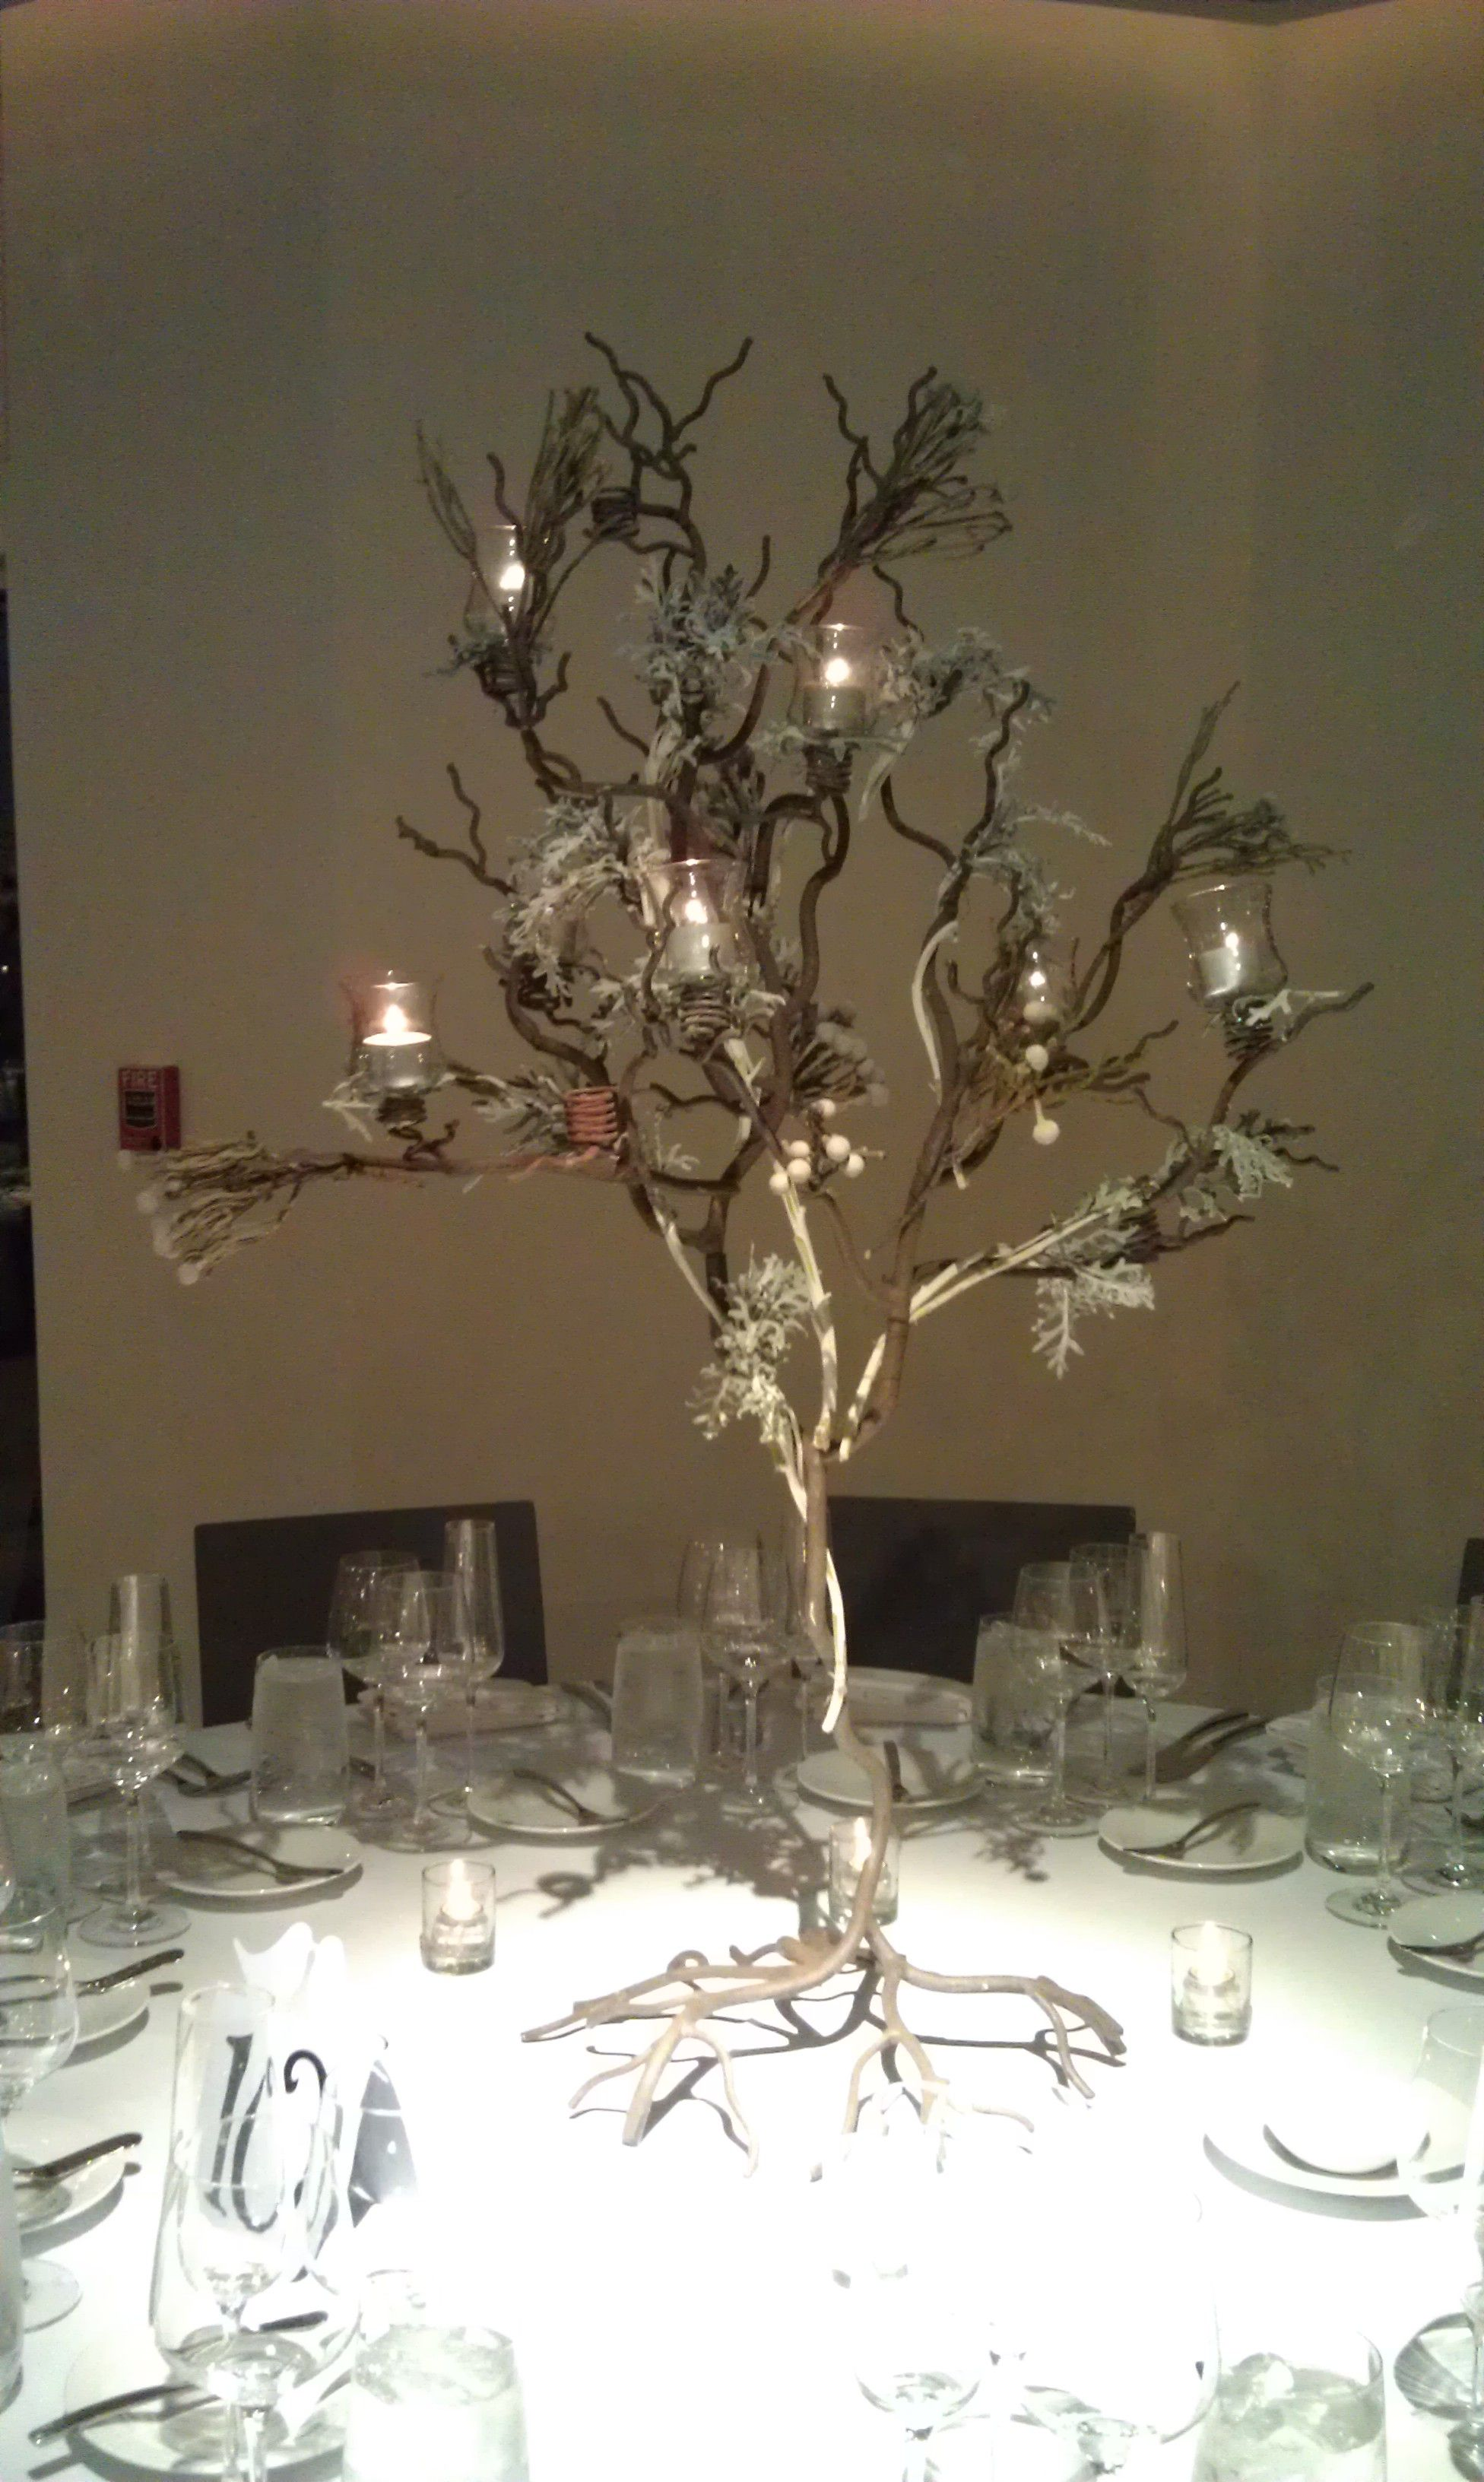 Terrific Wedding Centerpieces With Candles And Branches Cheap Download Free Architecture Designs Sospemadebymaigaardcom